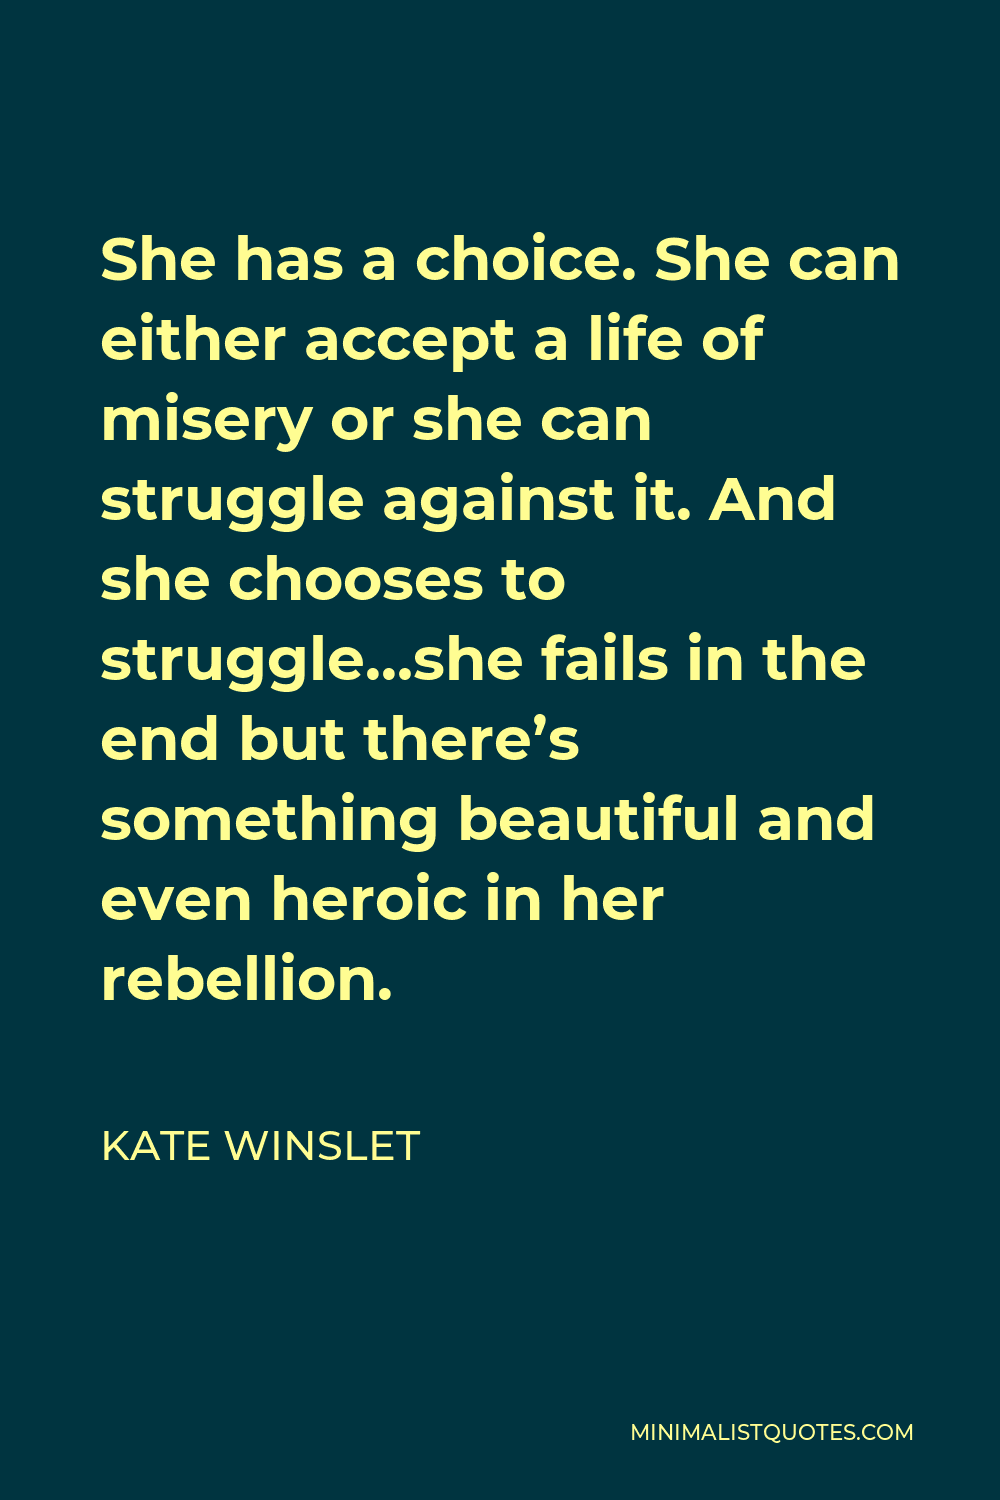 Kate Winslet Quote - She has a choice. She can either accept a life of misery or she can struggle against it. And she chooses to struggle…she fails in the end but there's something beautiful and even heroic in her rebellion.